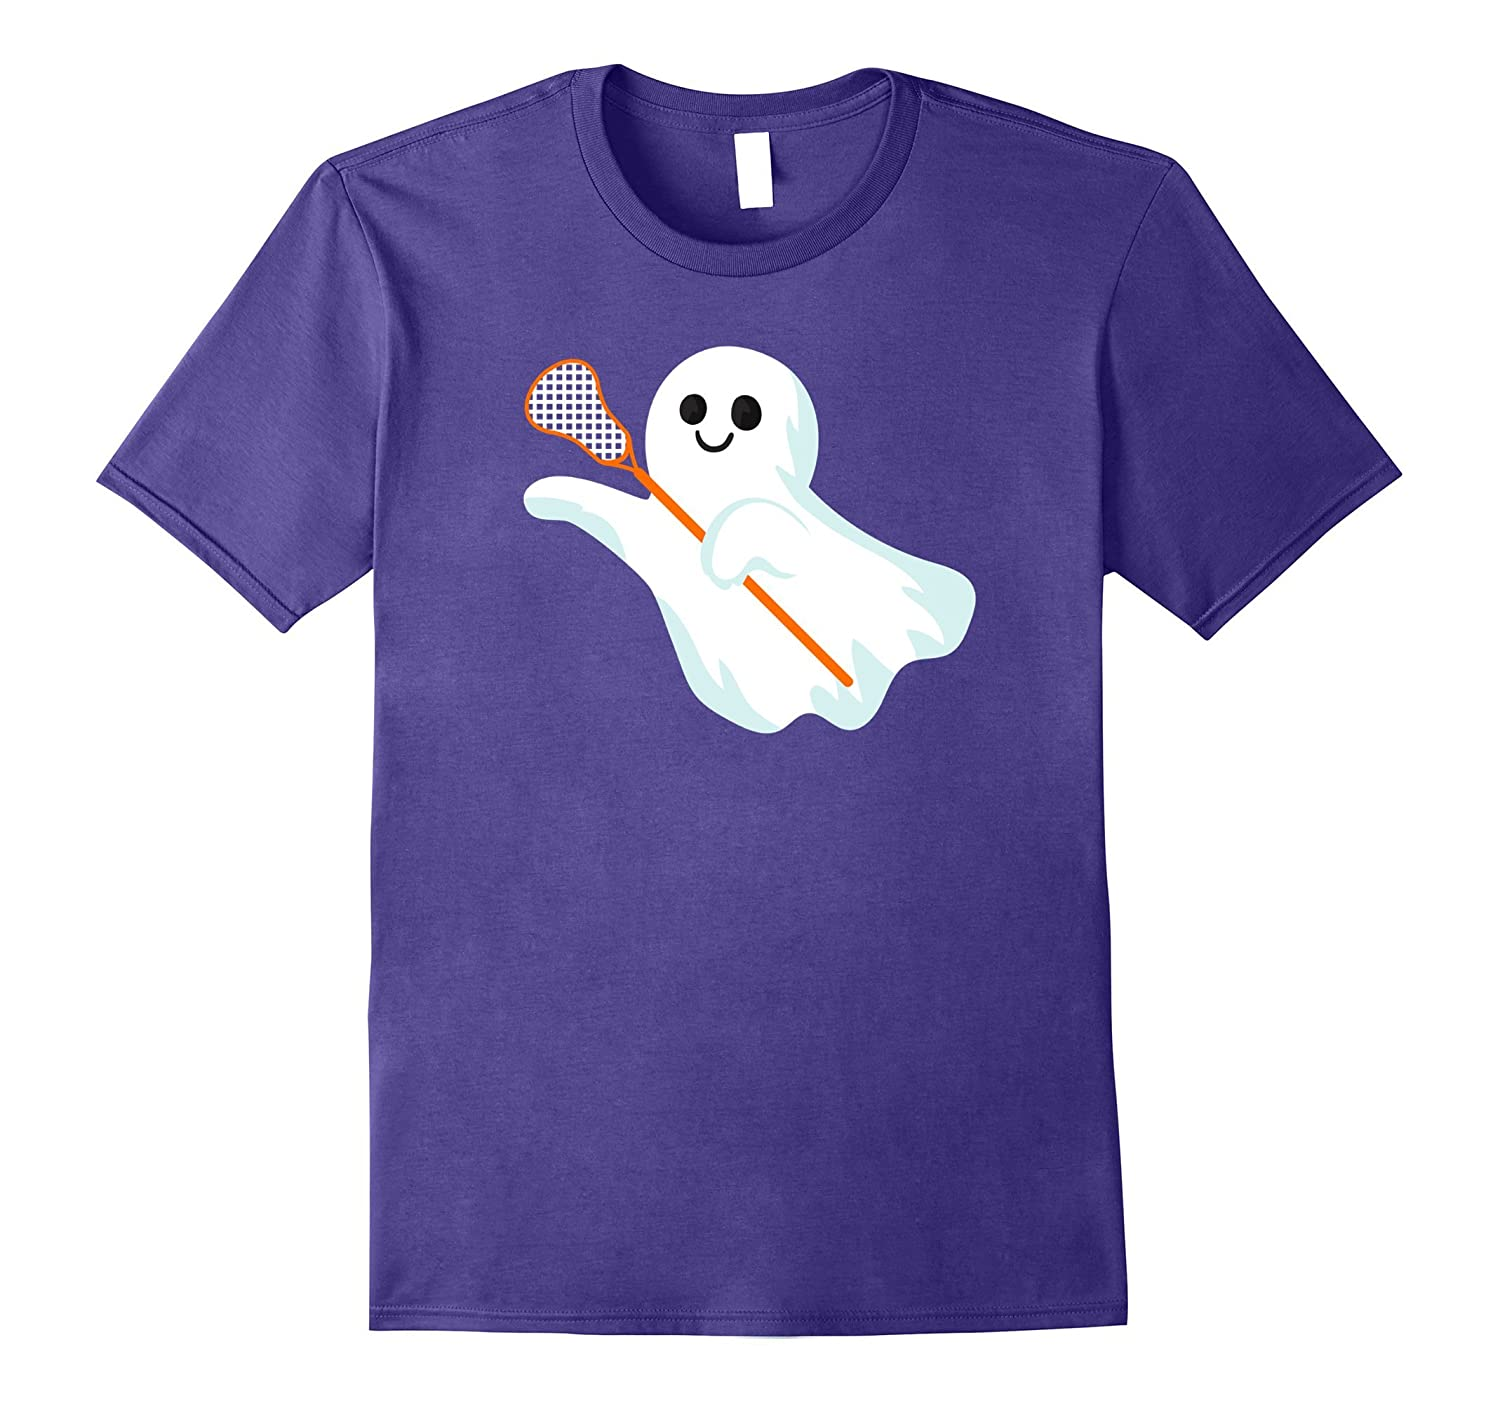 Lacrosse Girl Shirt - Ghost with Stick for Halloween-FL